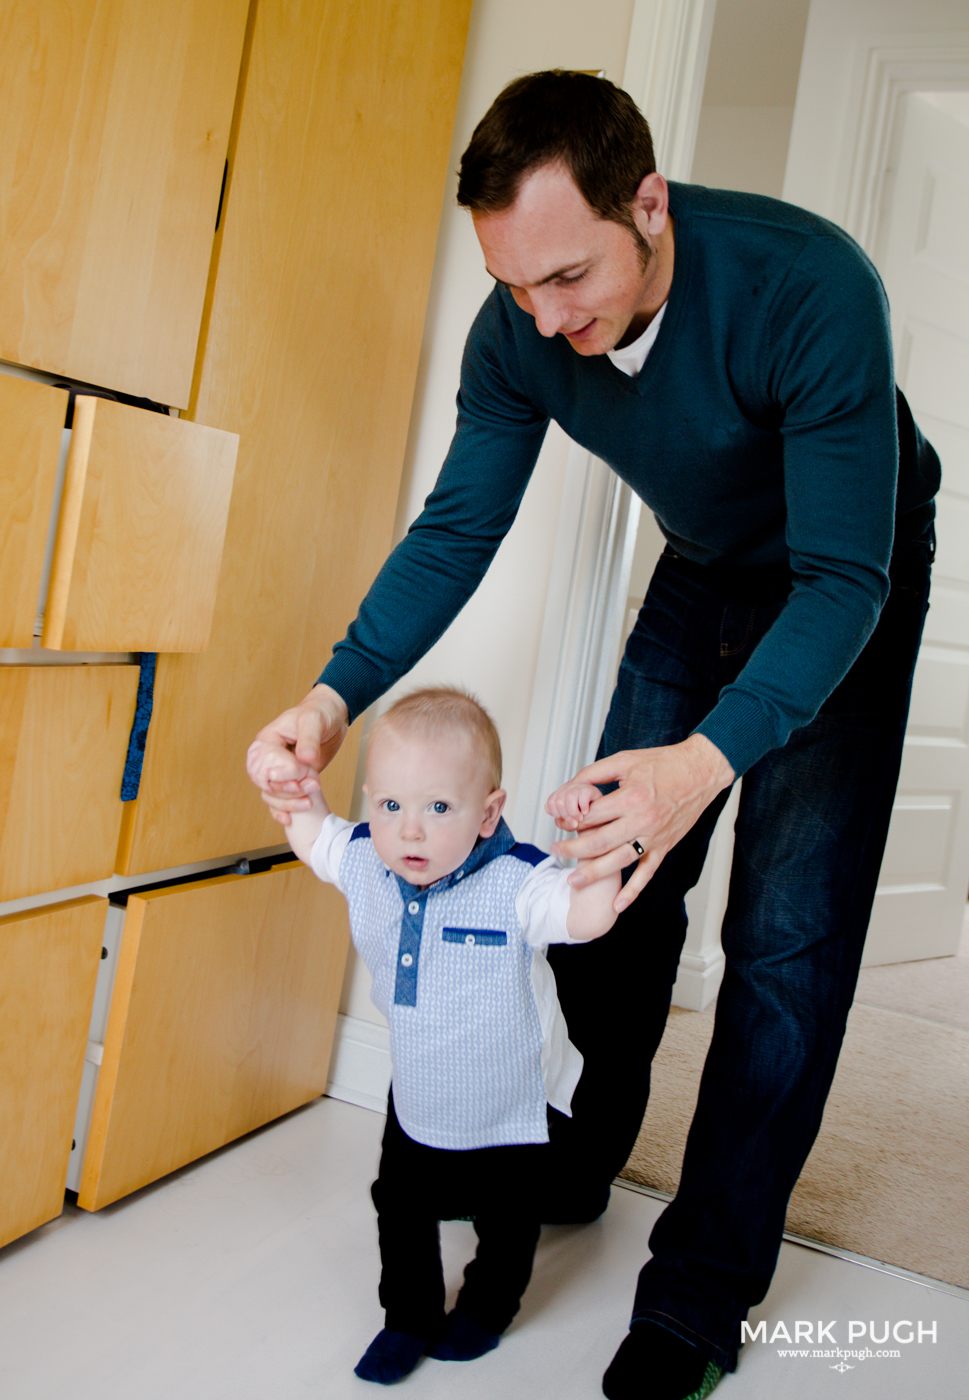 017 - Kirsty, Edward and Frederick Family Photography session by Mark Pugh www.markpugh.com -0323.JPG